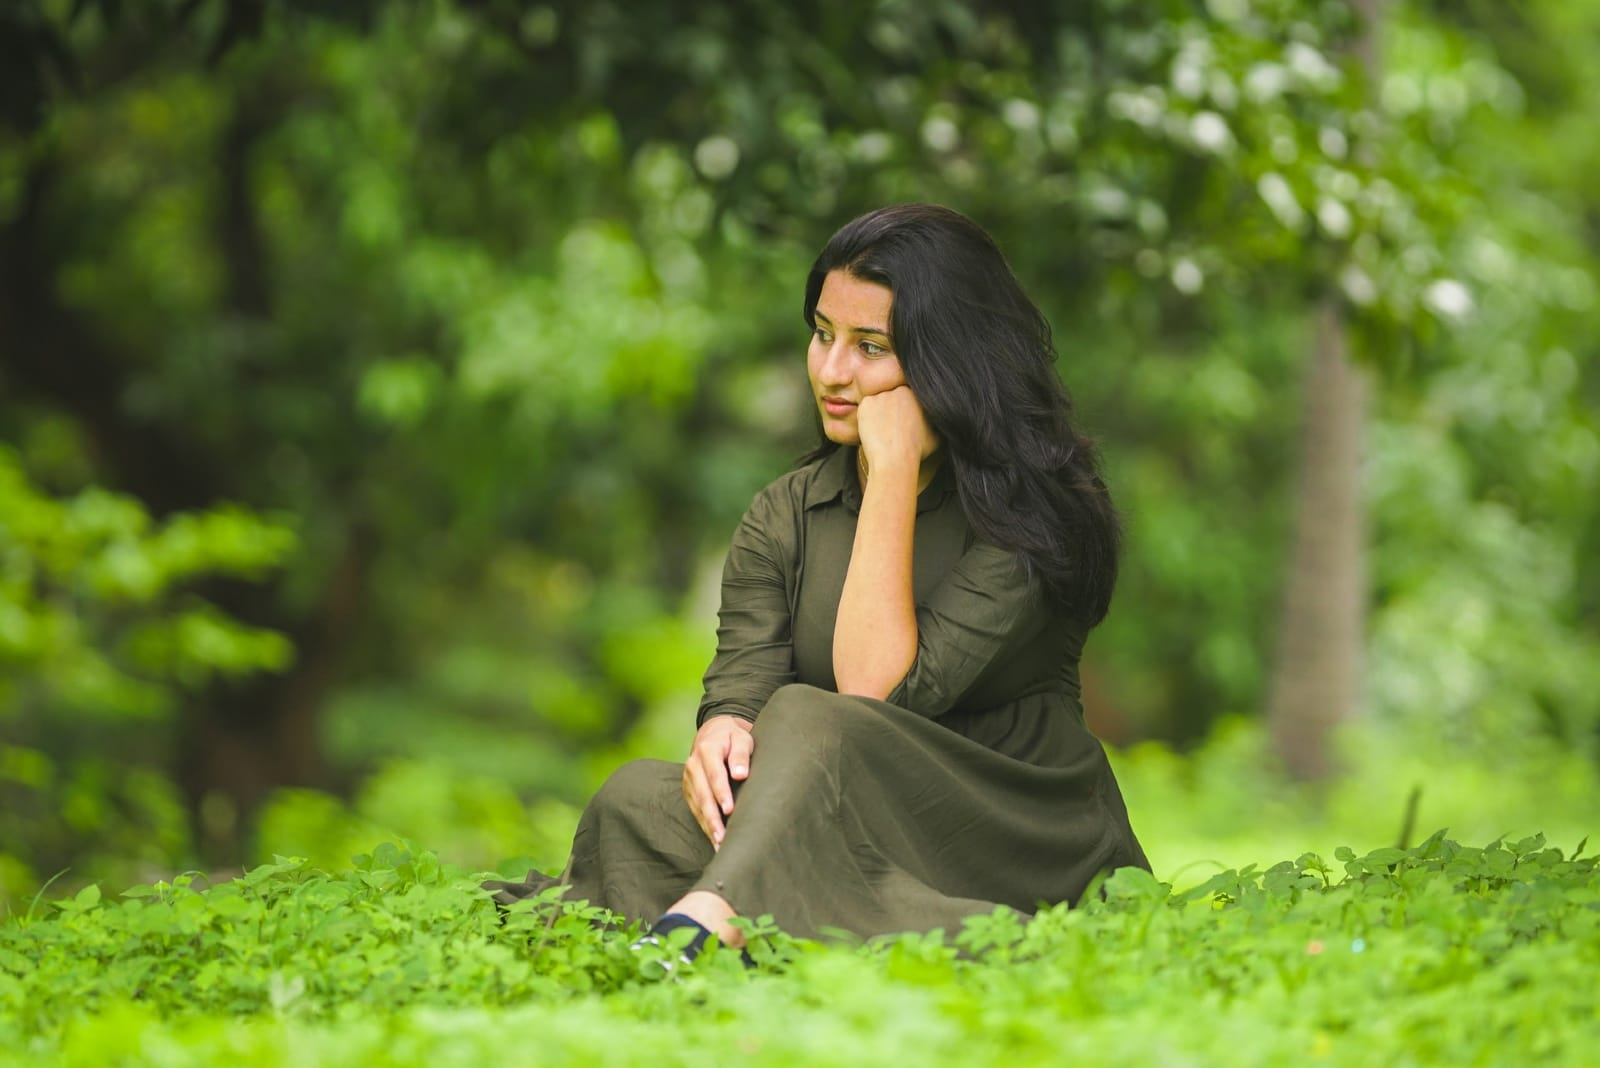 pensive woman in green dress sitting on grass